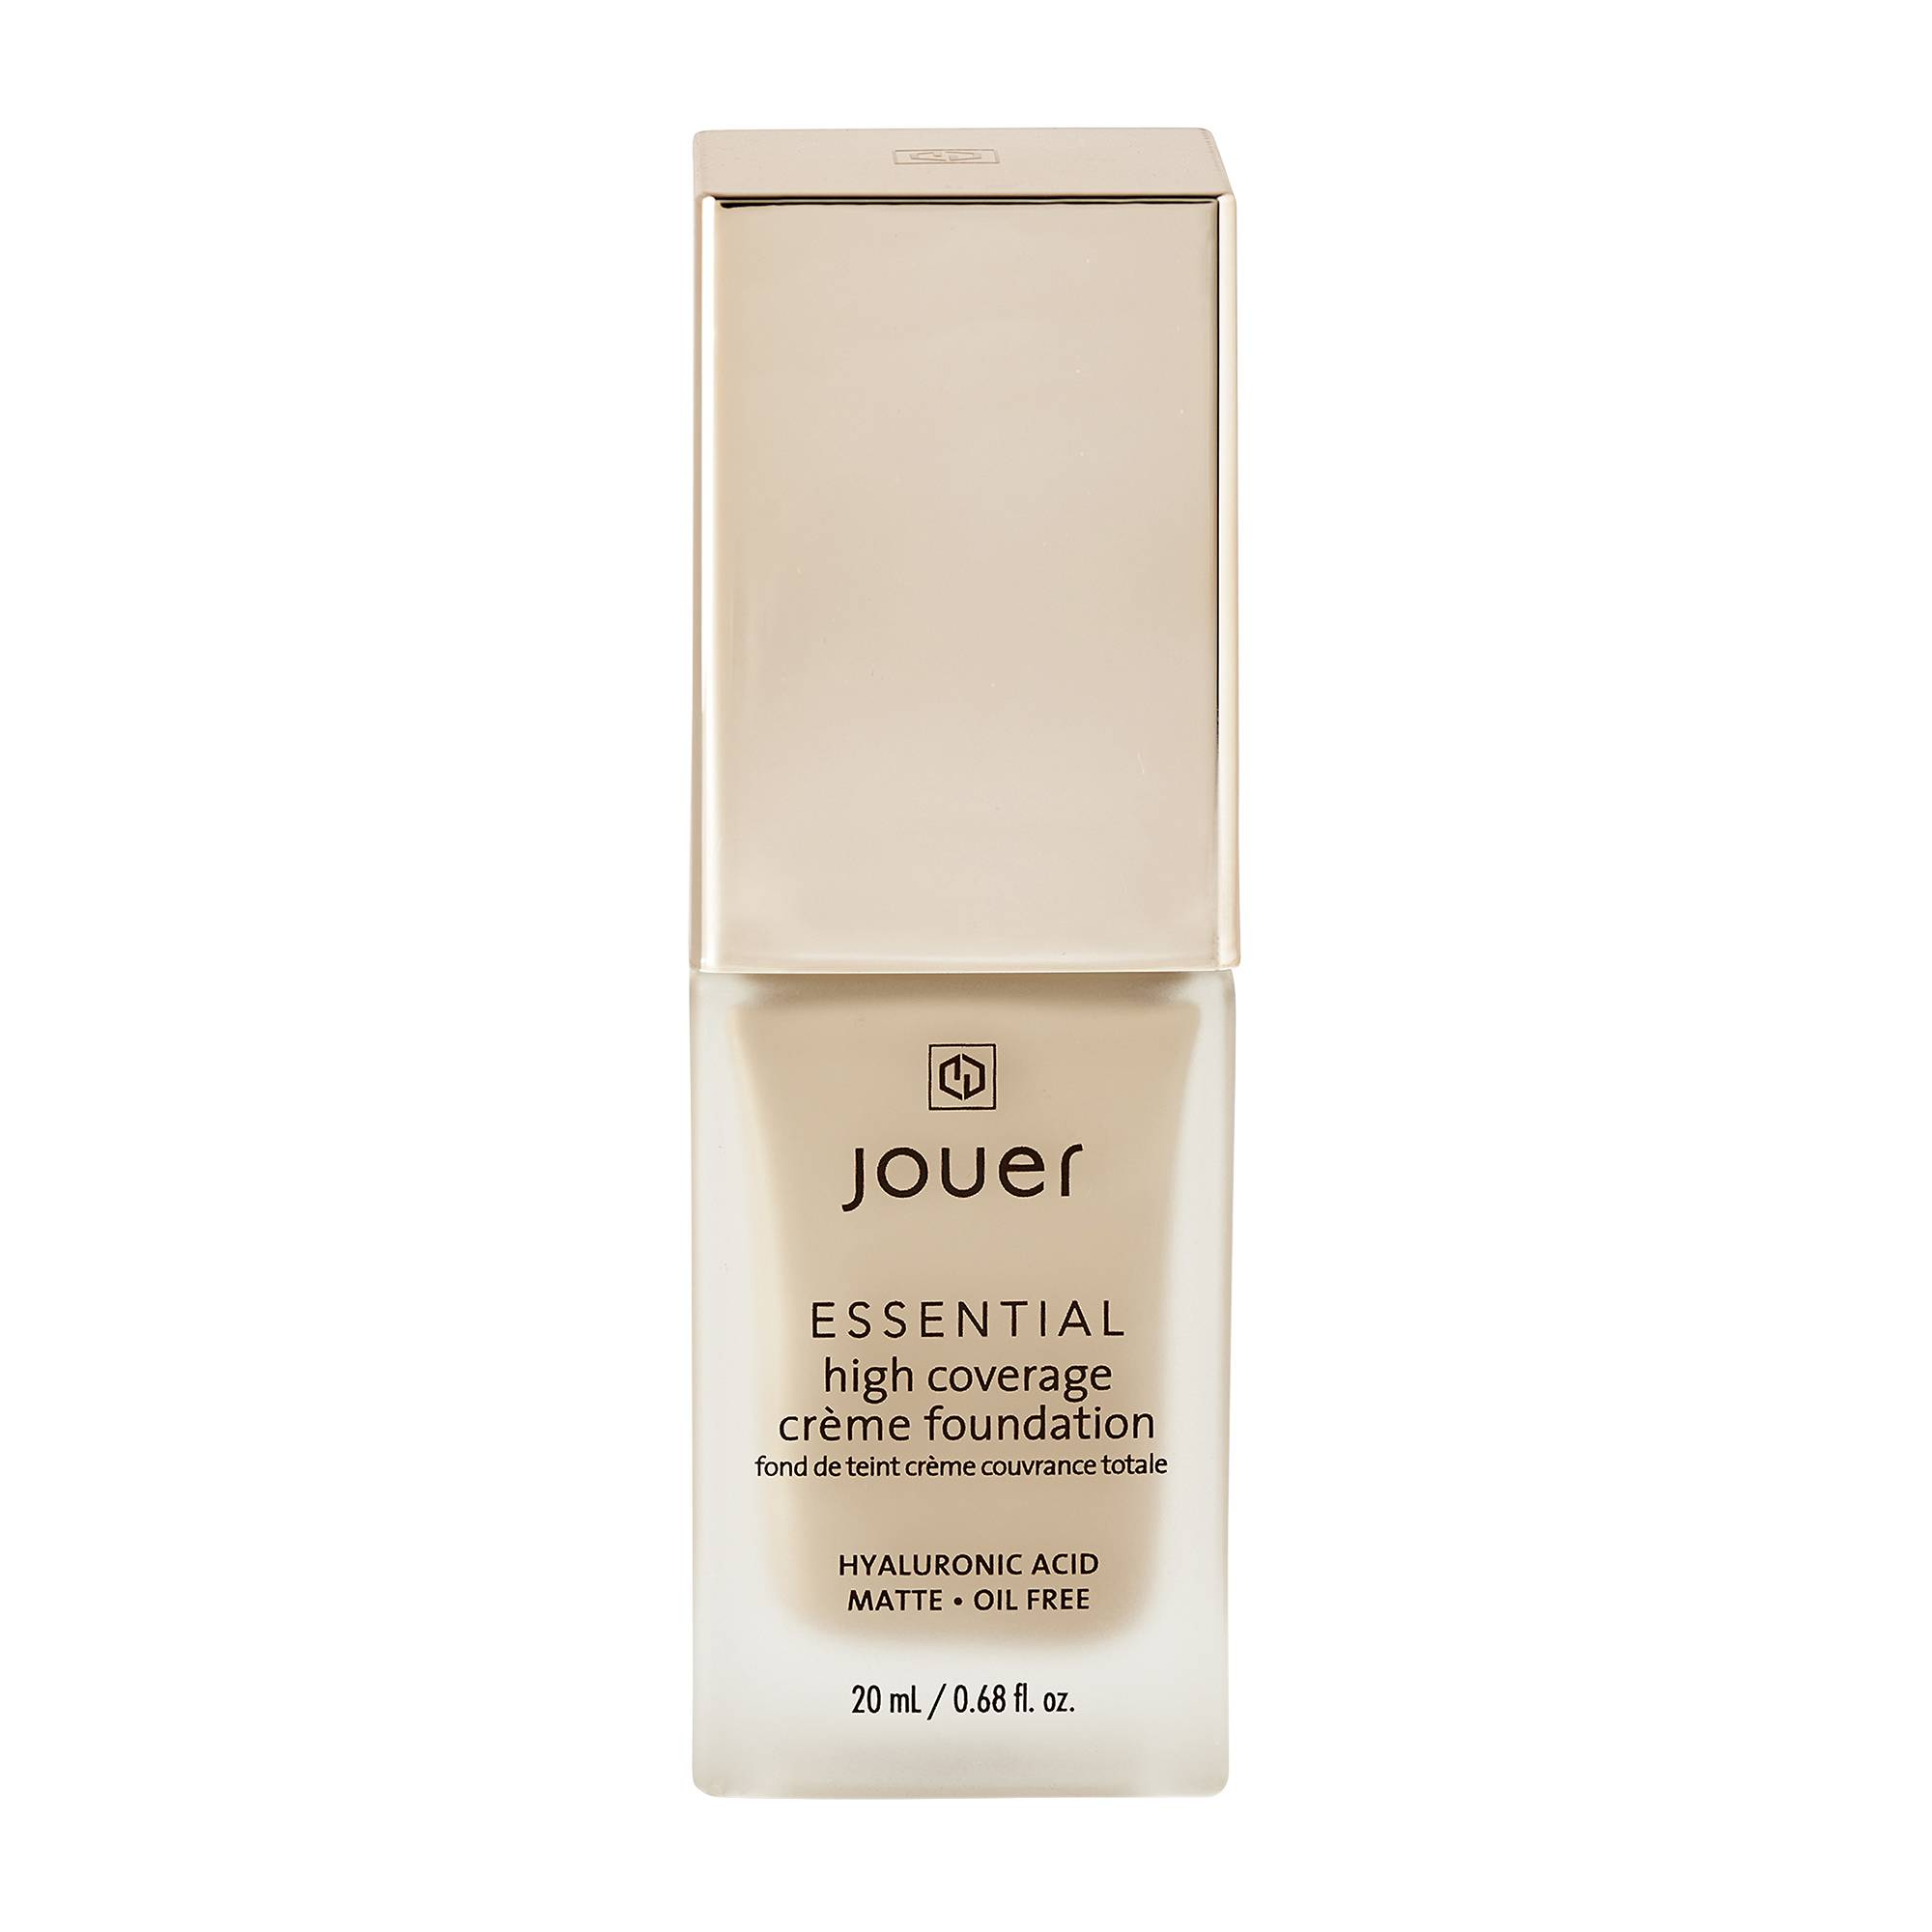 Jouer Cosmetics Essential High Coverage Creme Foundation Fawn 20ml